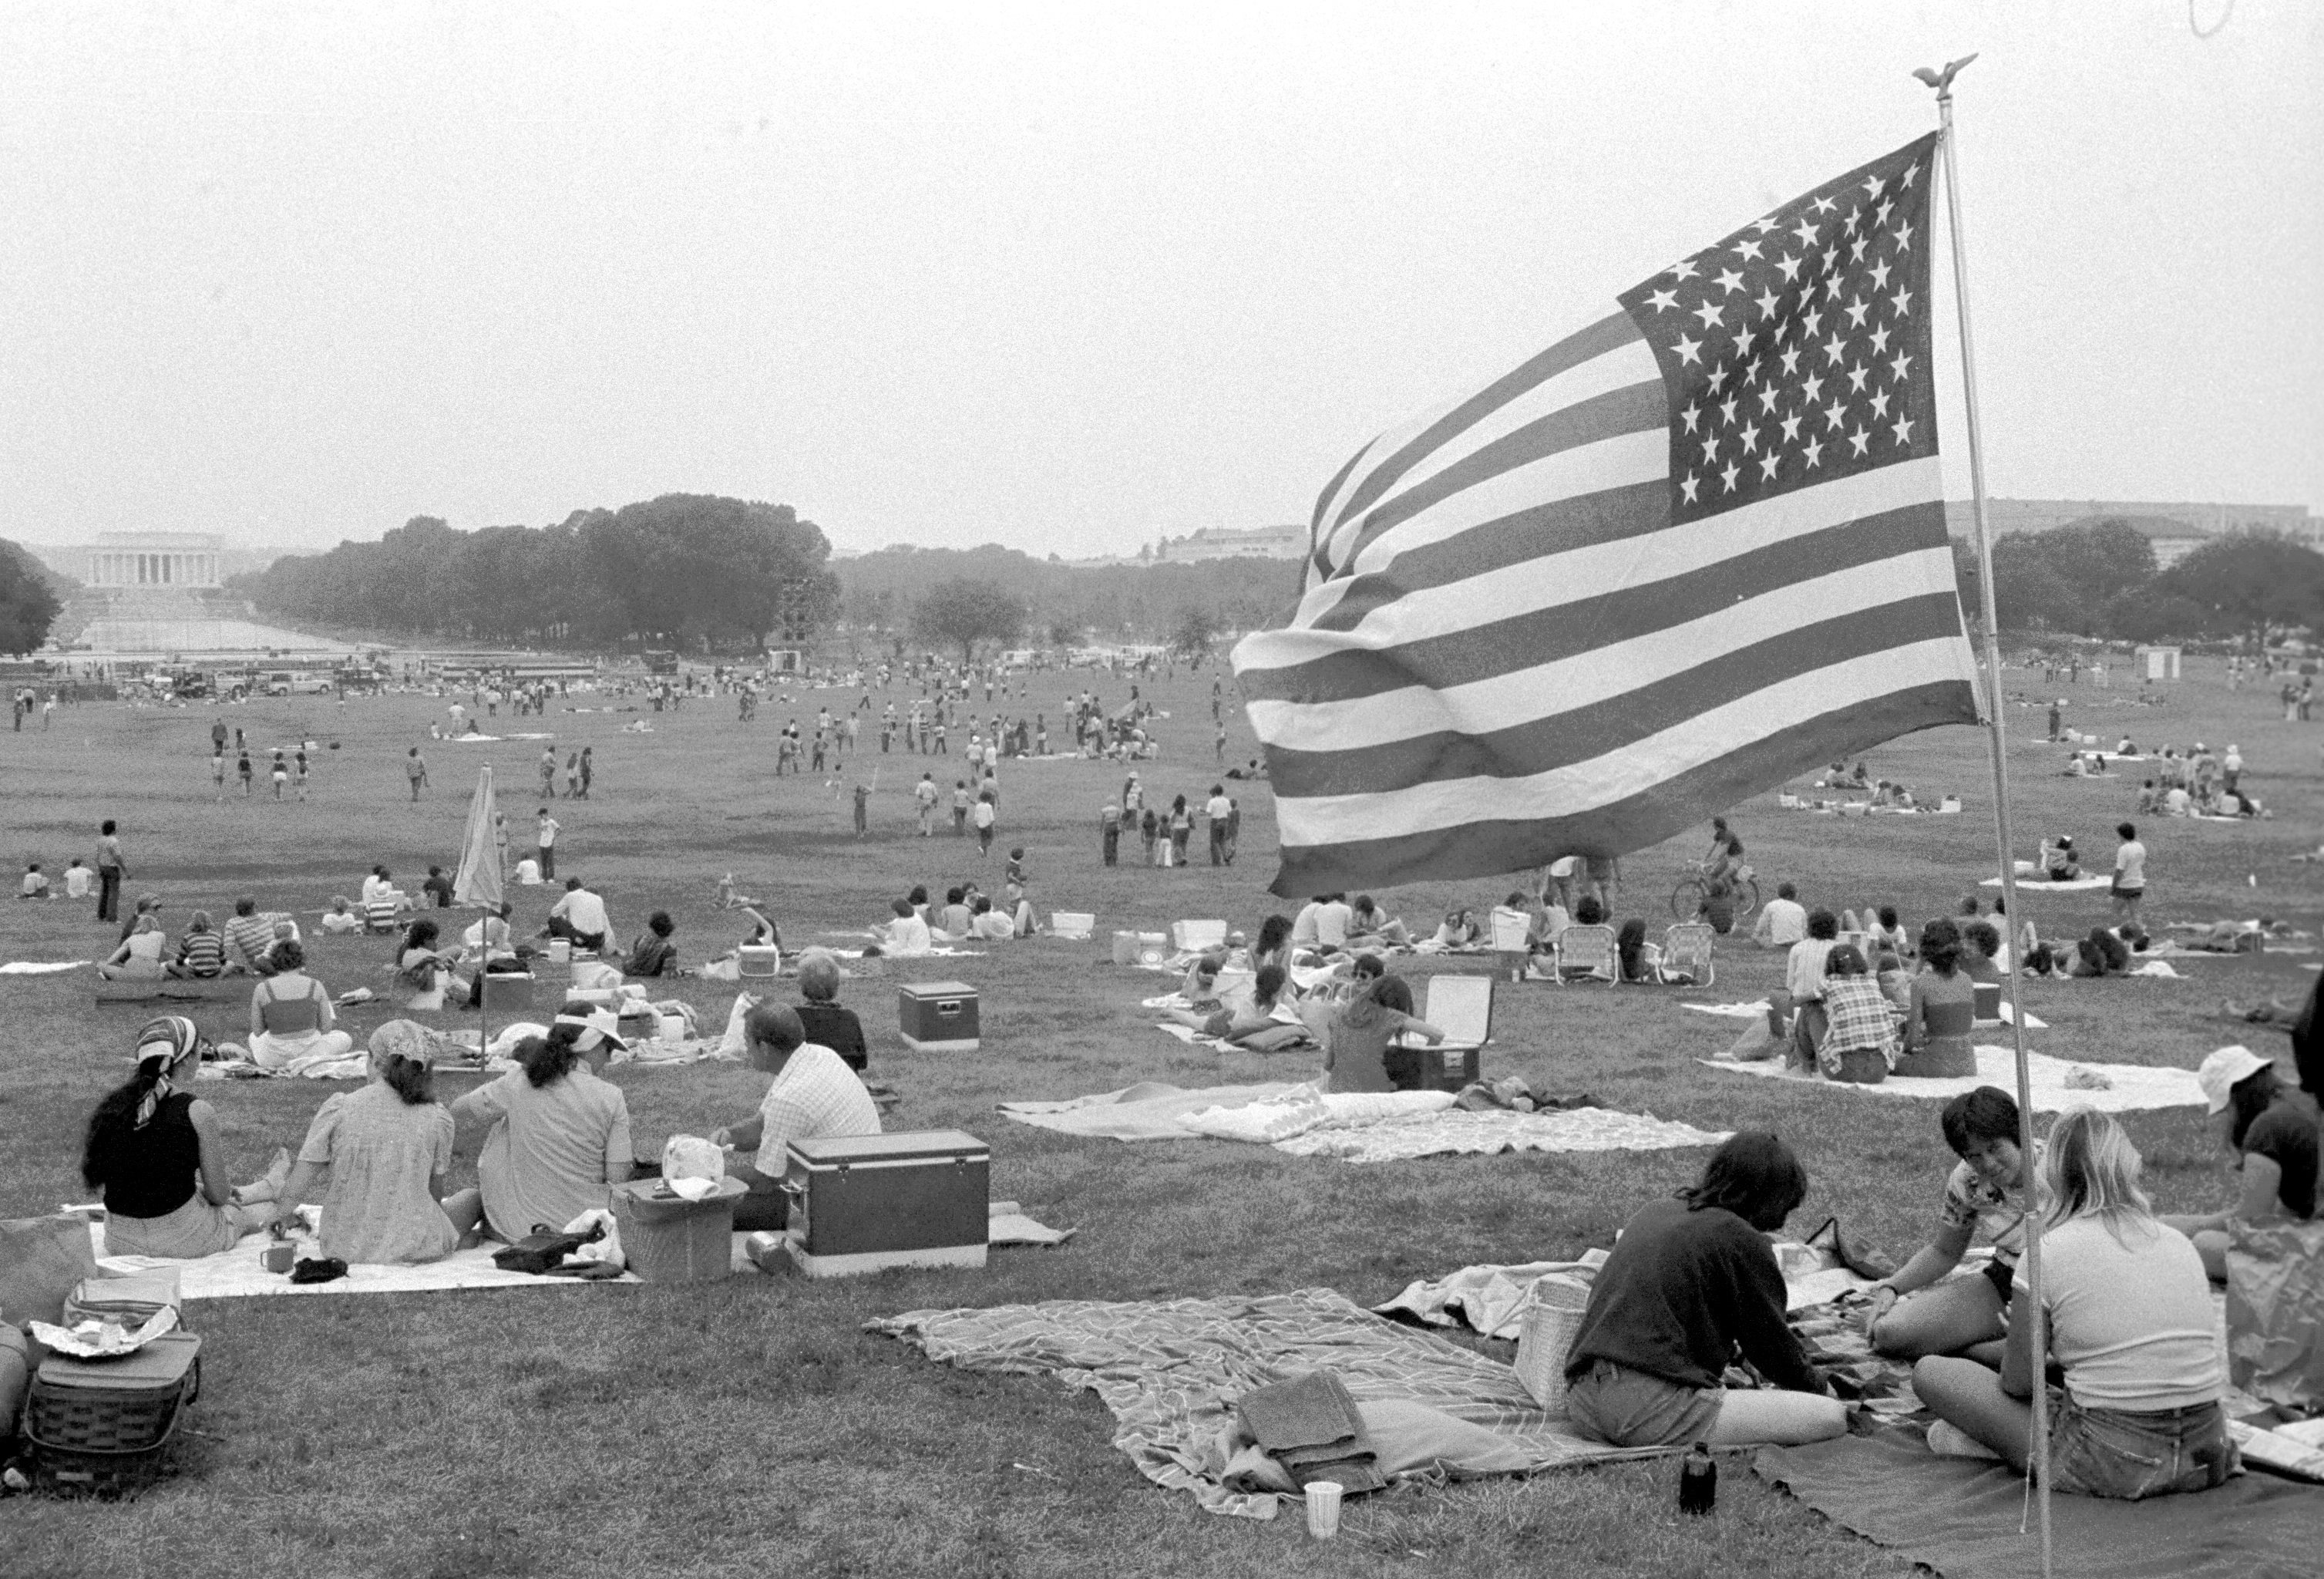 A group of people sit on a lawn with an American flag waving in the forefront.